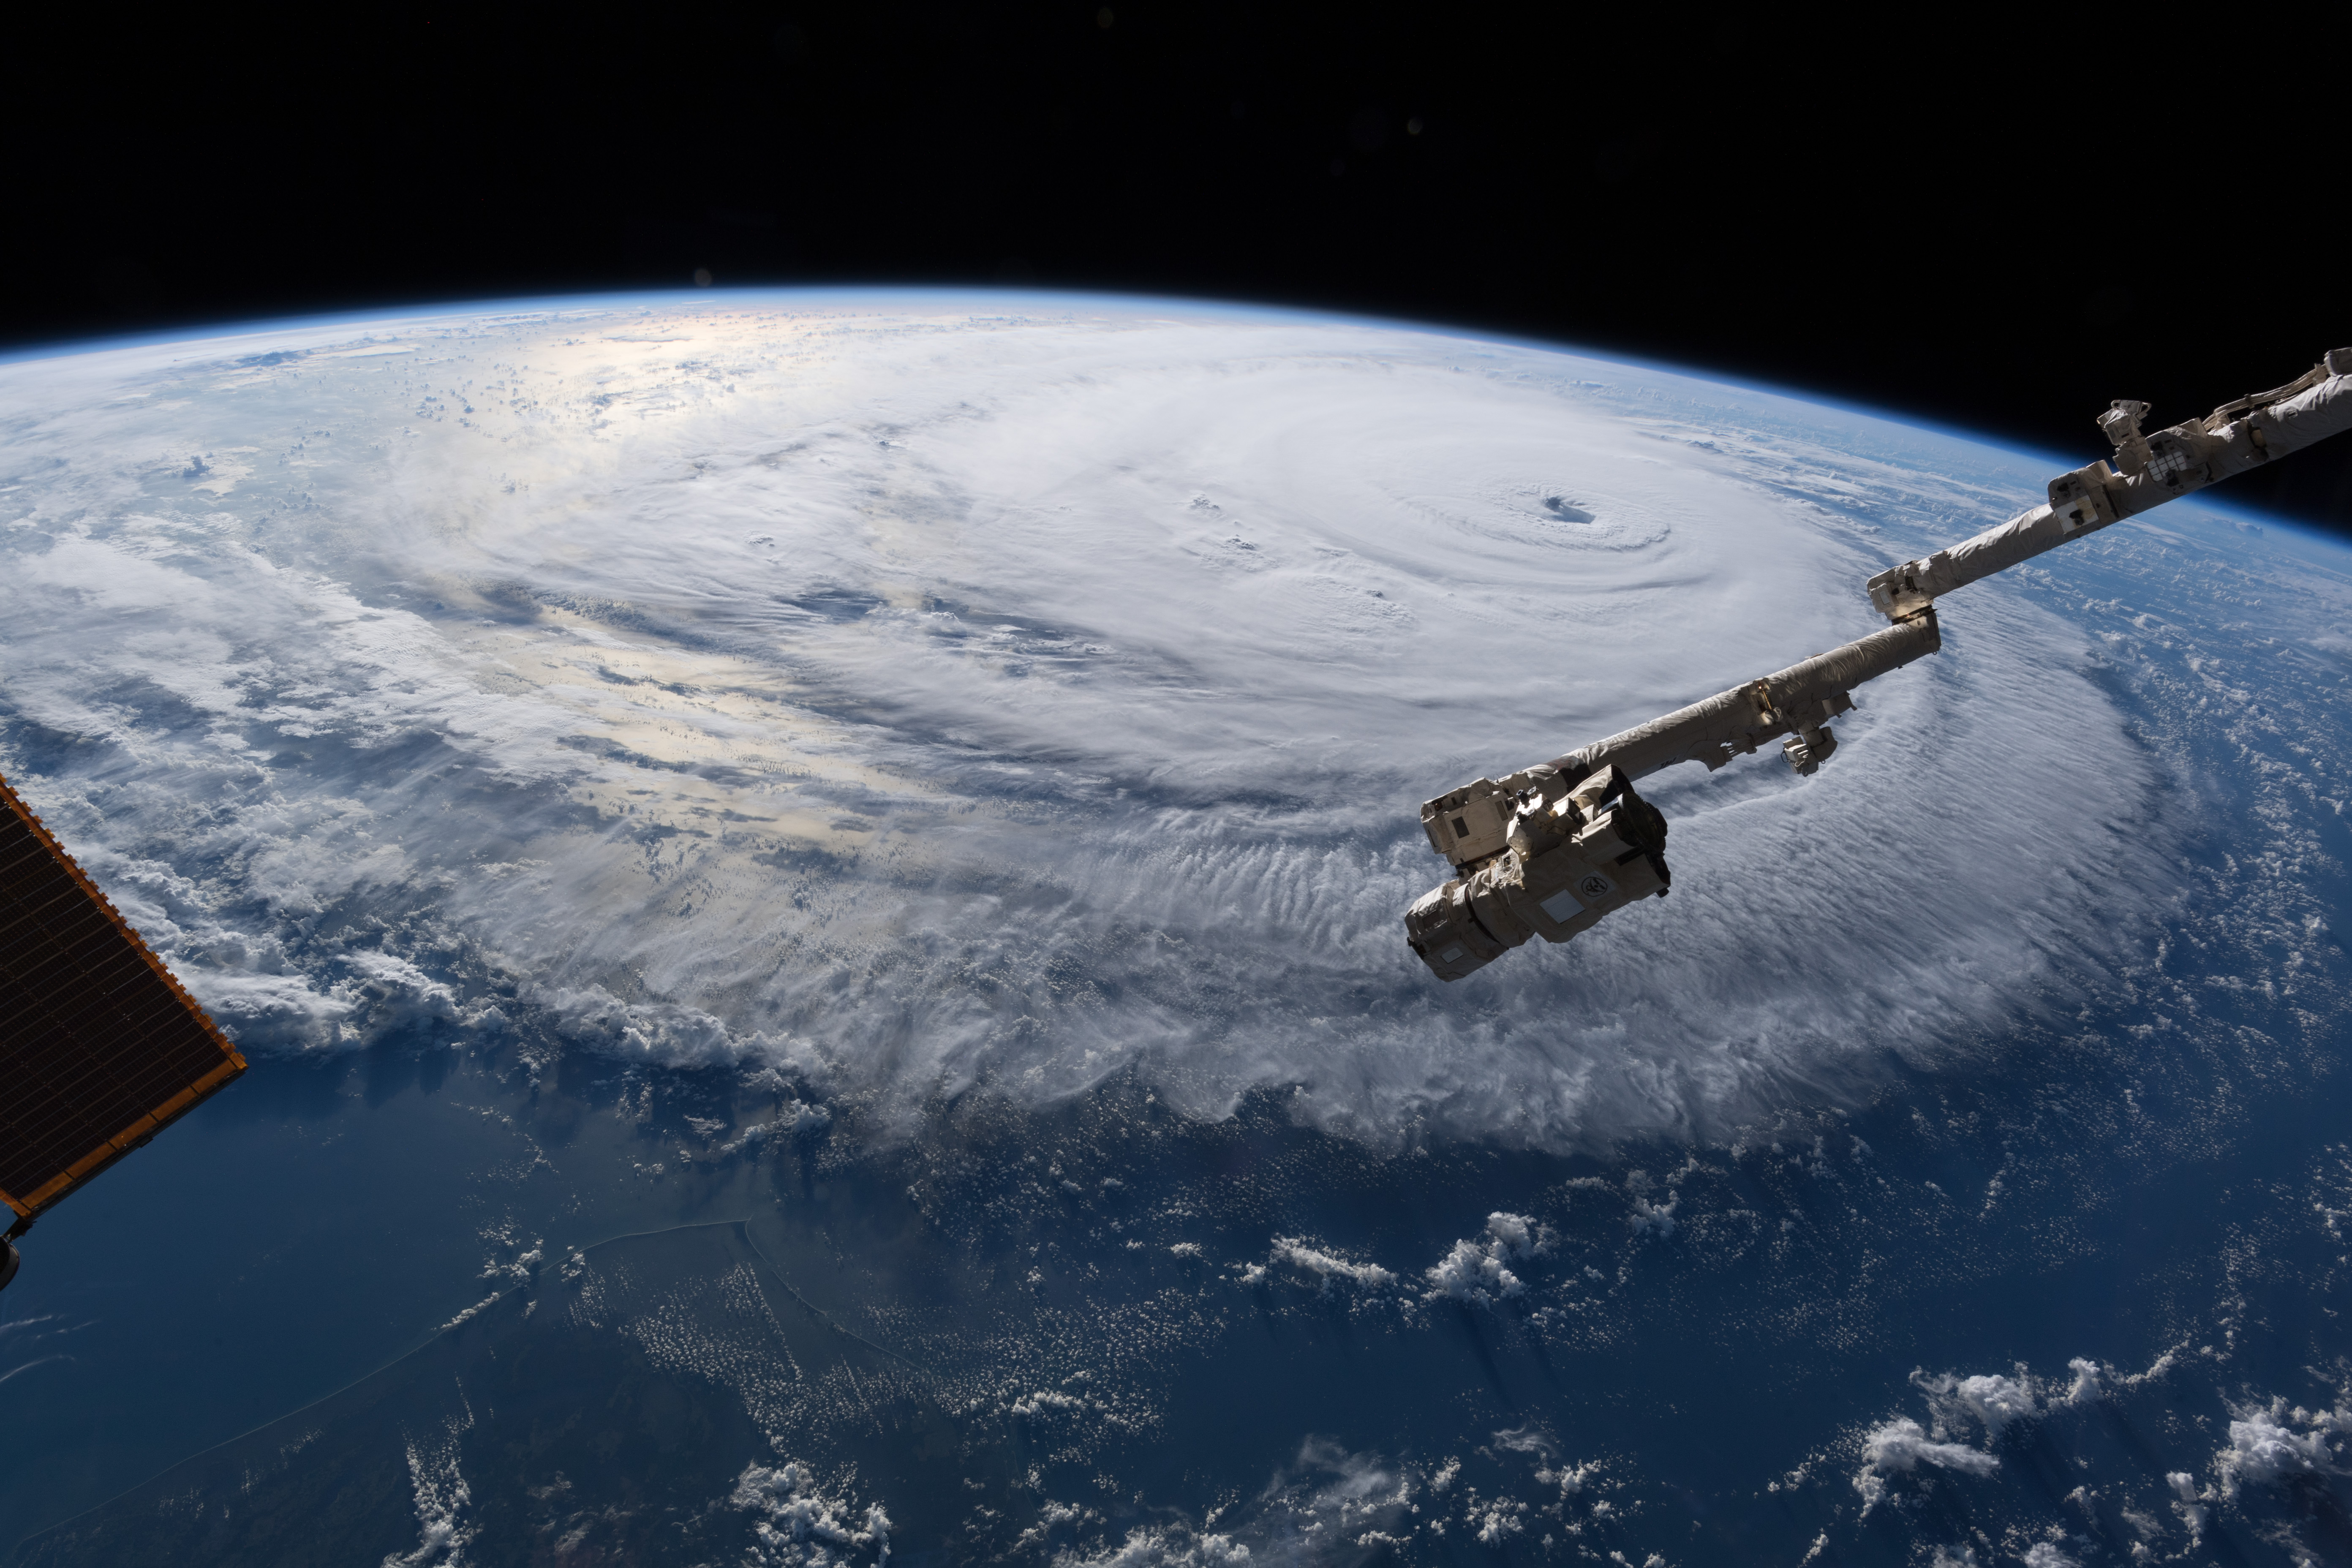 General 5568x3712 hurricane Earth clouds spiral cyclone photography Alexander Gerst NASA snow science space station nature storm bird's eye view landscape satellite ISS planet sea Typhoon sunlight atmosphere